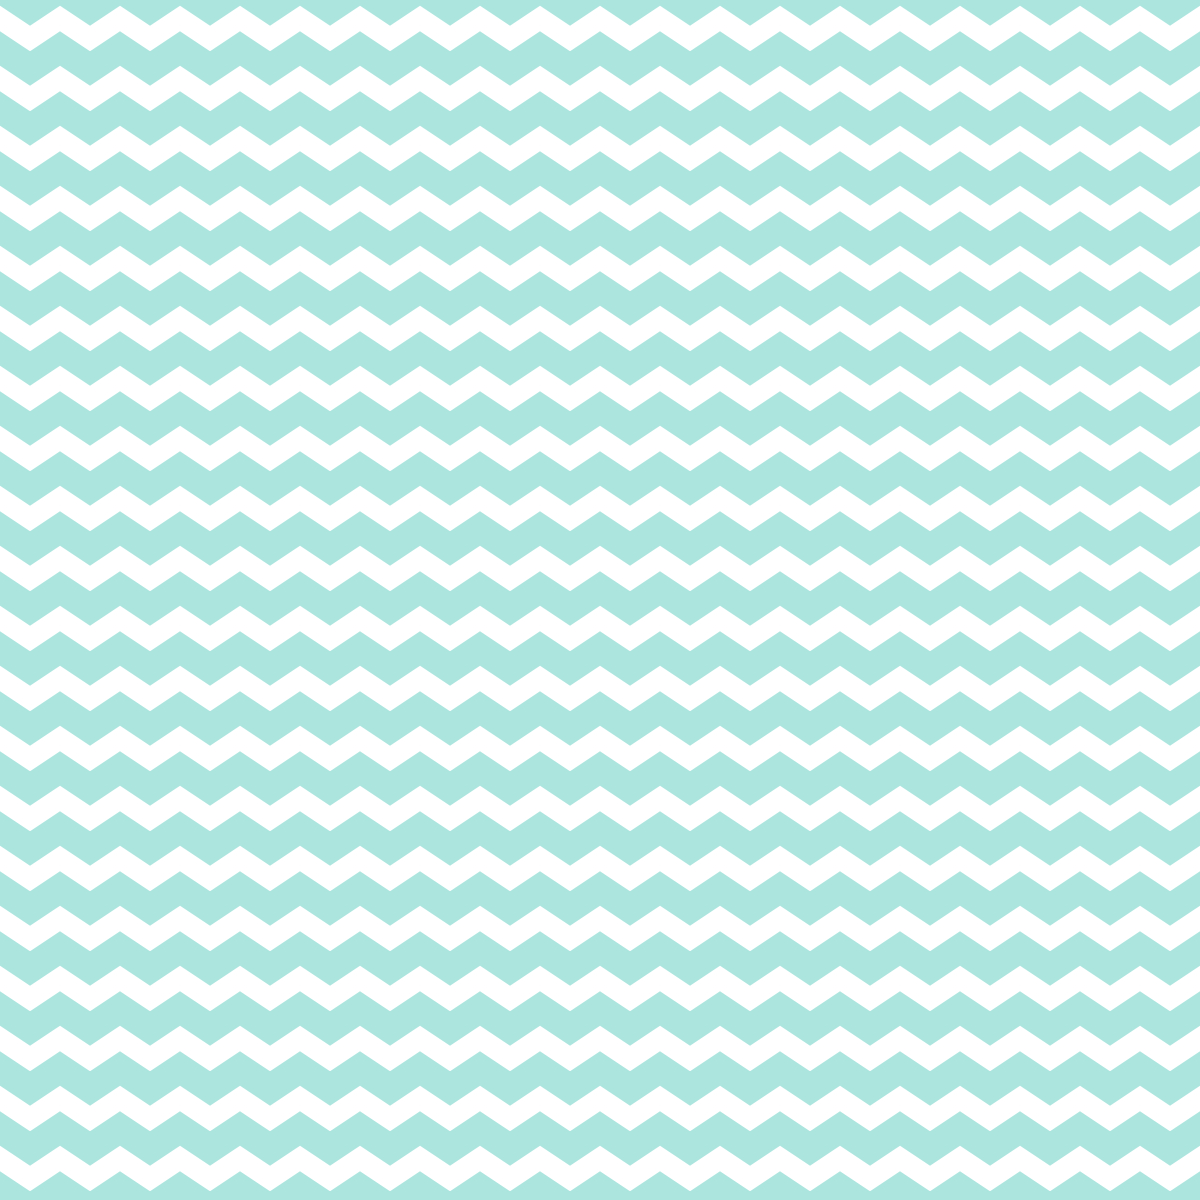 Free Digital Chevron Scrapbooking Papers - Ausdruckbares - Free Printable Backgrounds For Paper